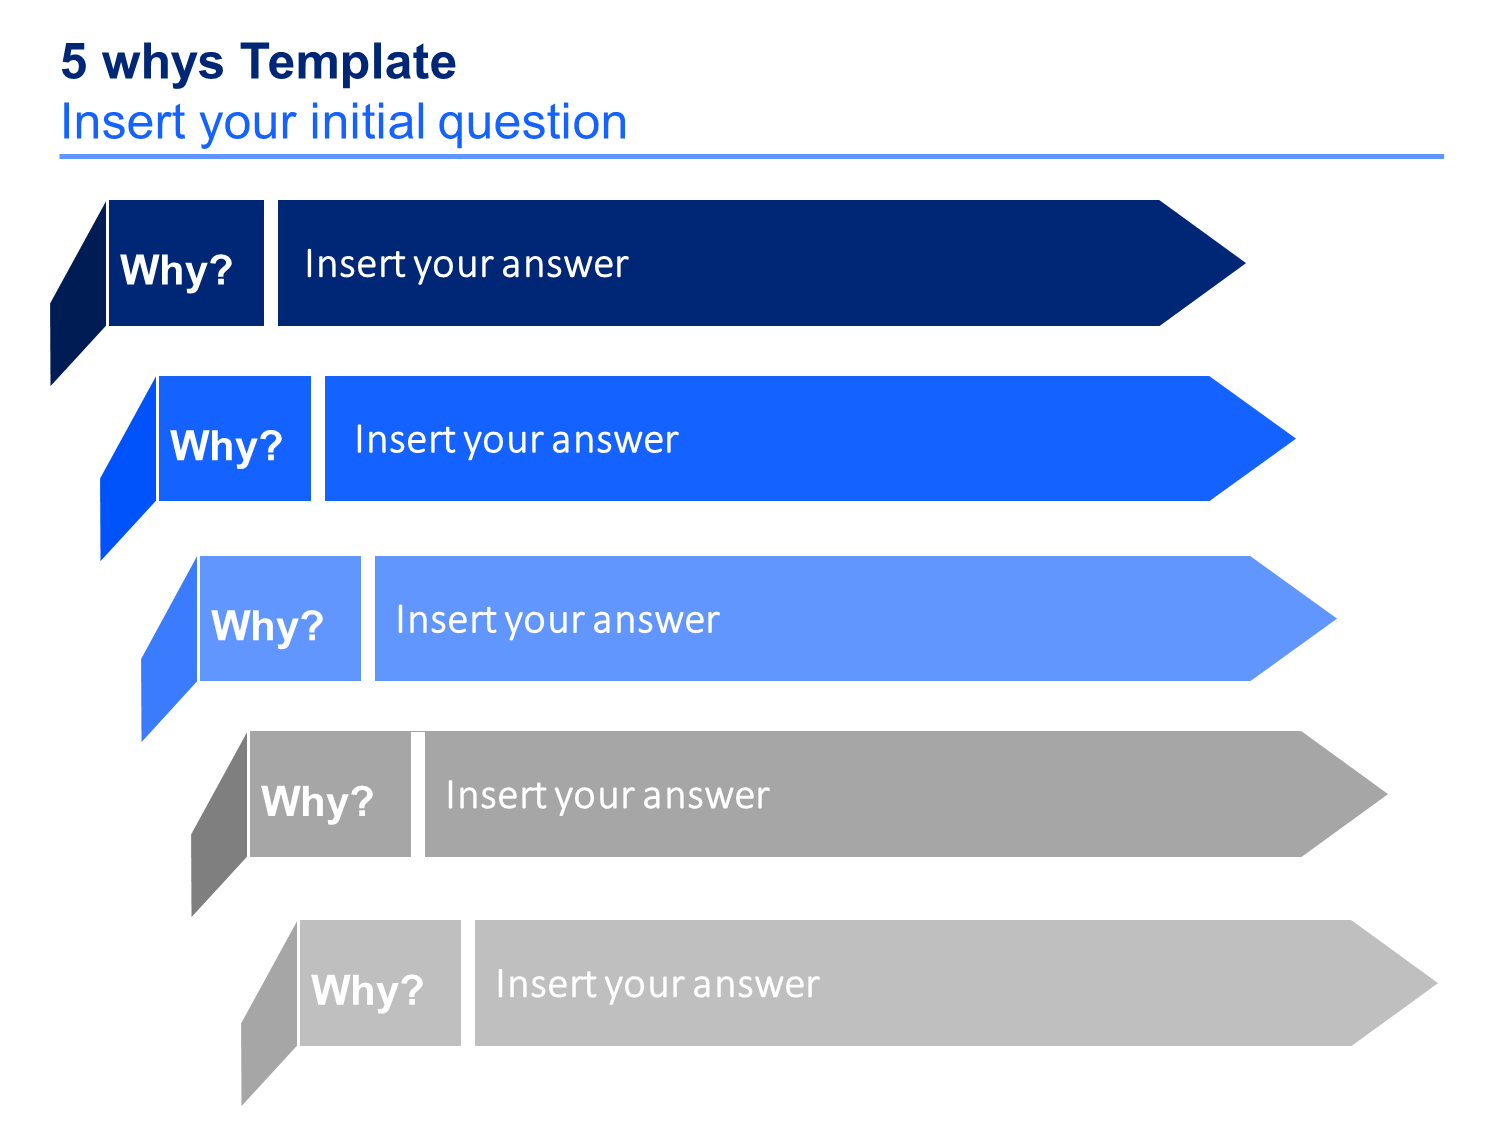 5 Whys Templates 5 Whys Template By Ex Mckinsey Consultants 5